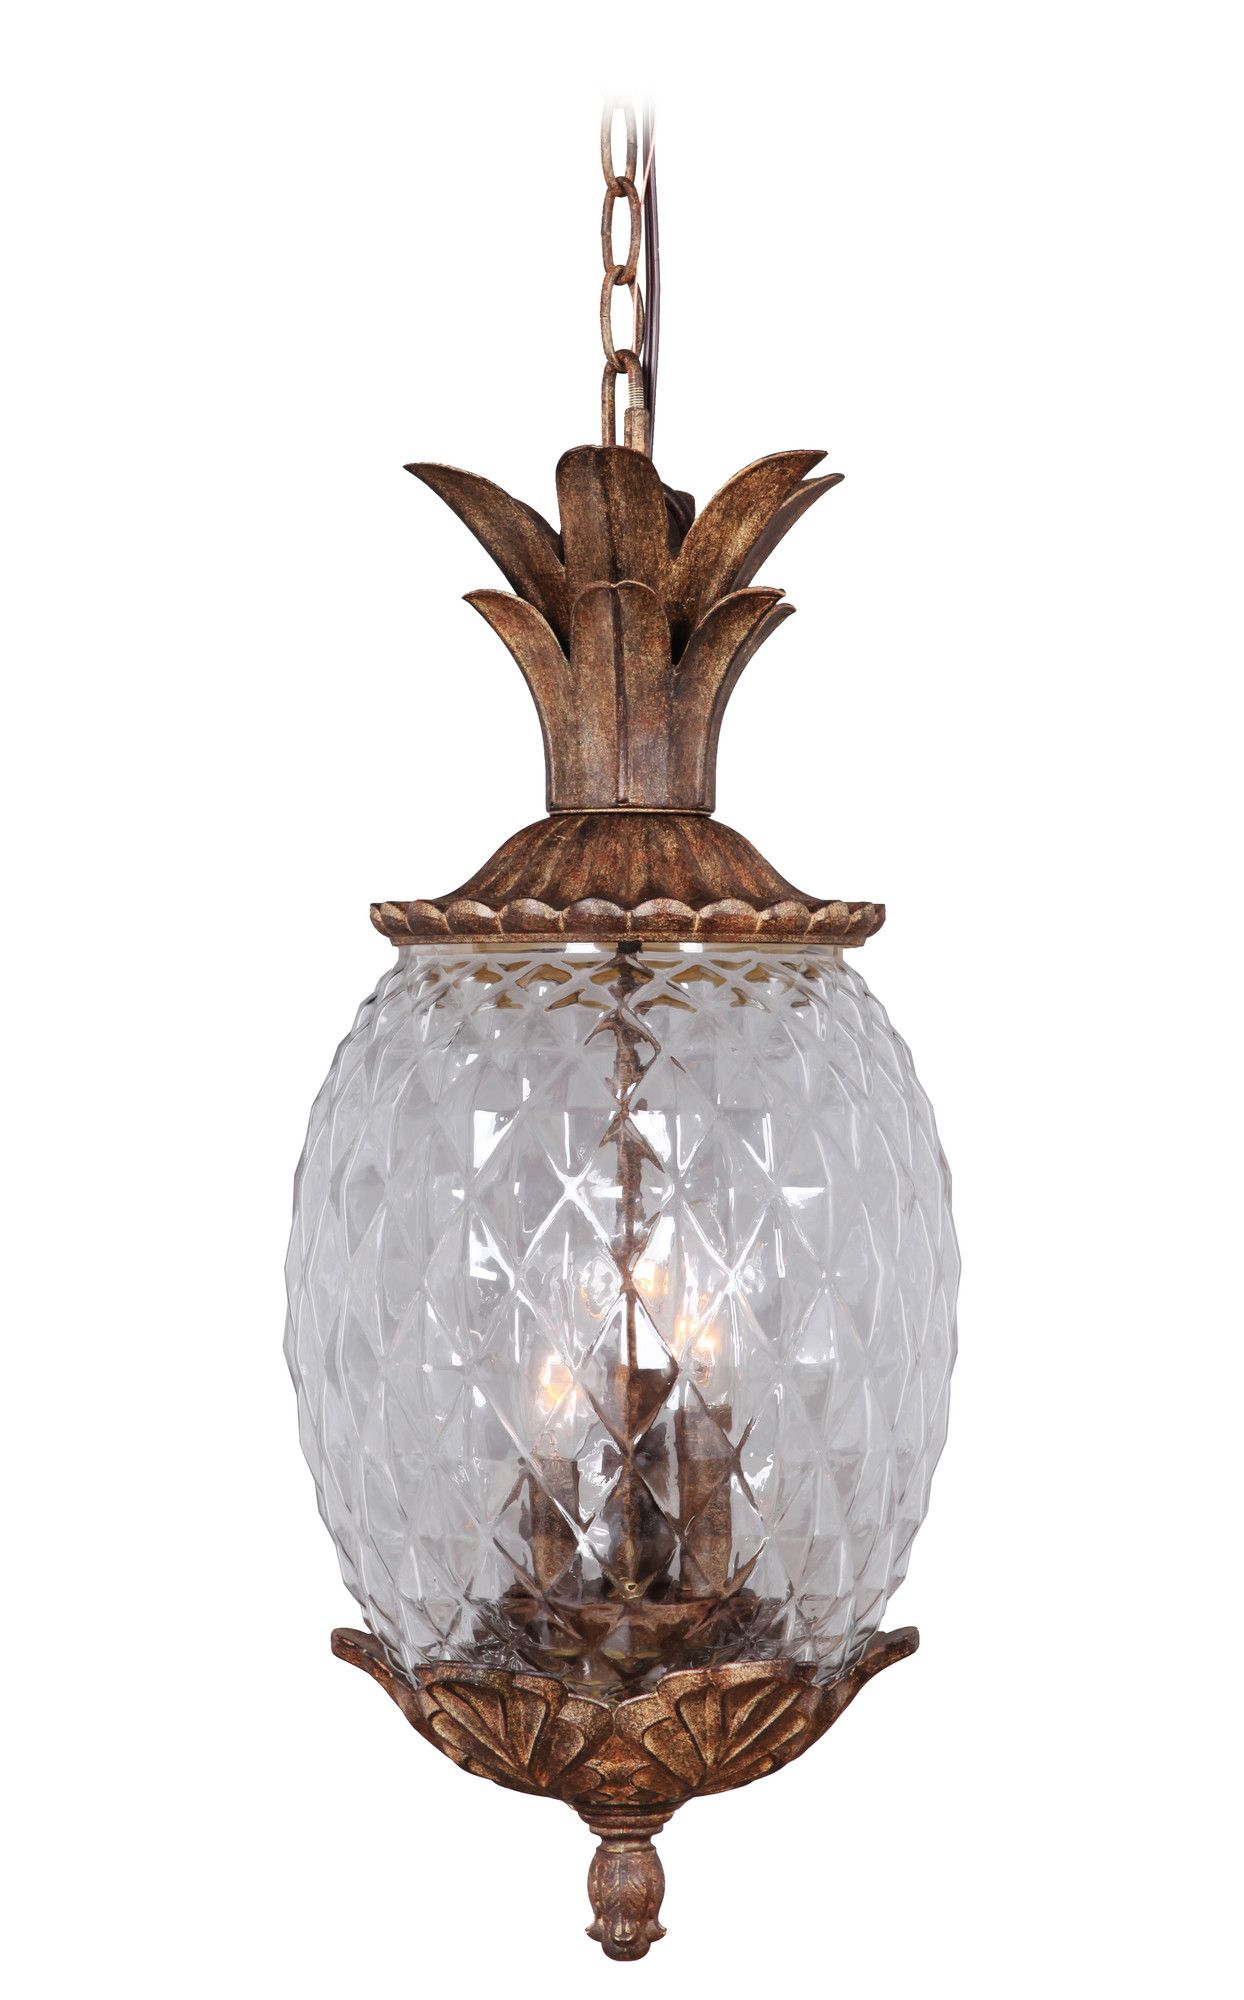 Marianahome pineapple 3 light pendant reviews wayfair lighting